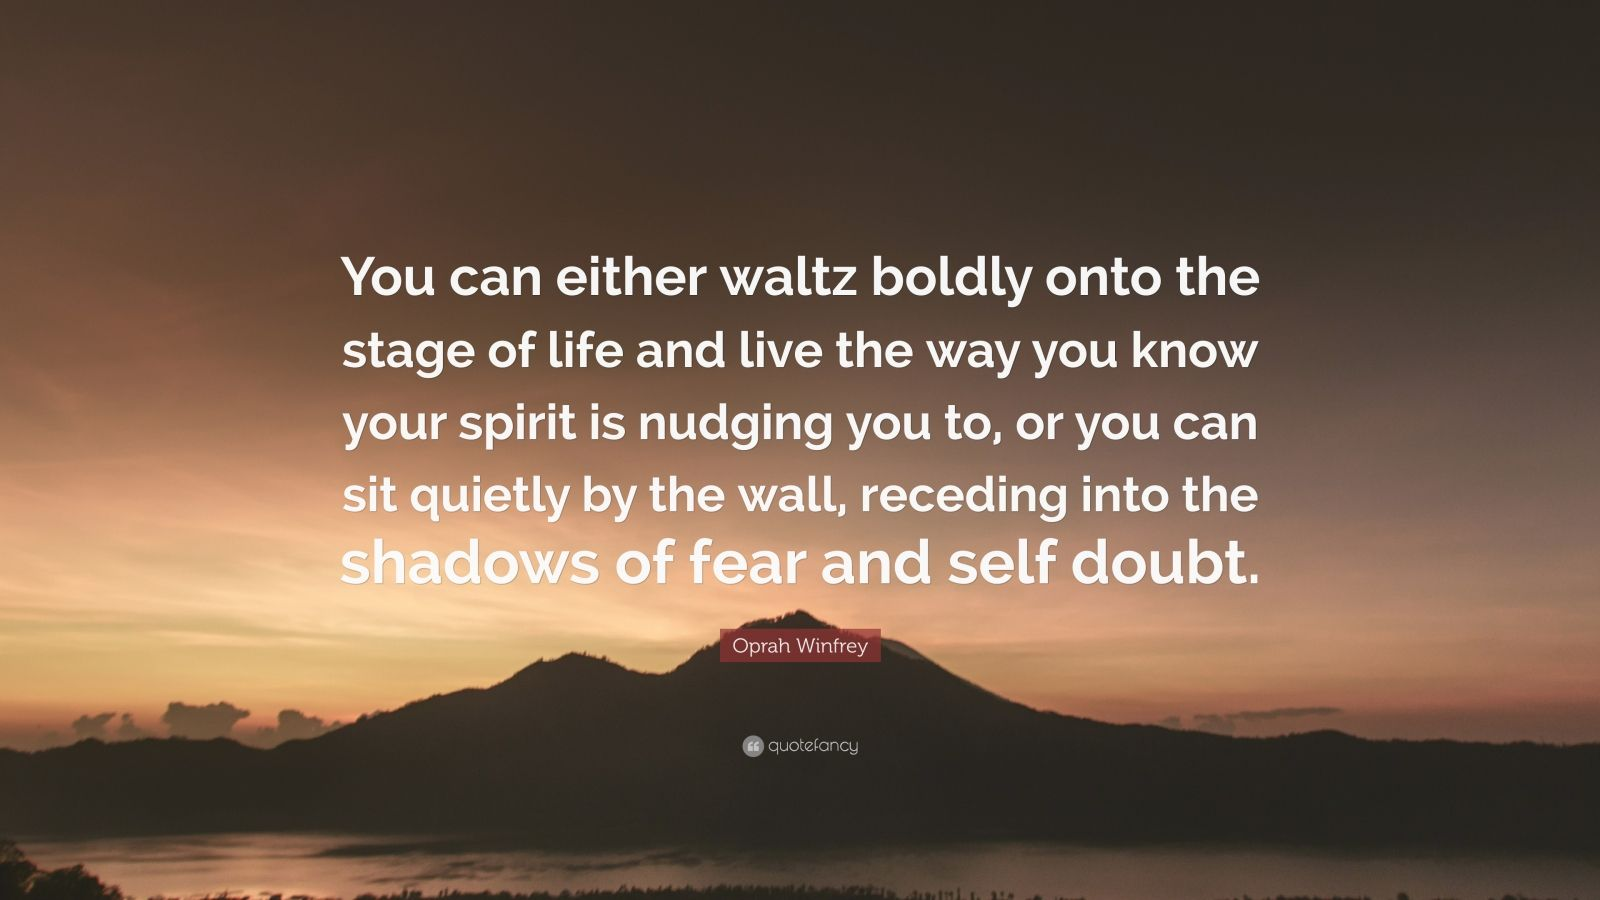 "Oprah Winfrey Quote: ""You can either waltz boldly onto the stage of life and live the way you know your spirit is nudging you to, or you can sit quietly by the wall, receding into the shadows of fear and self doubt."""